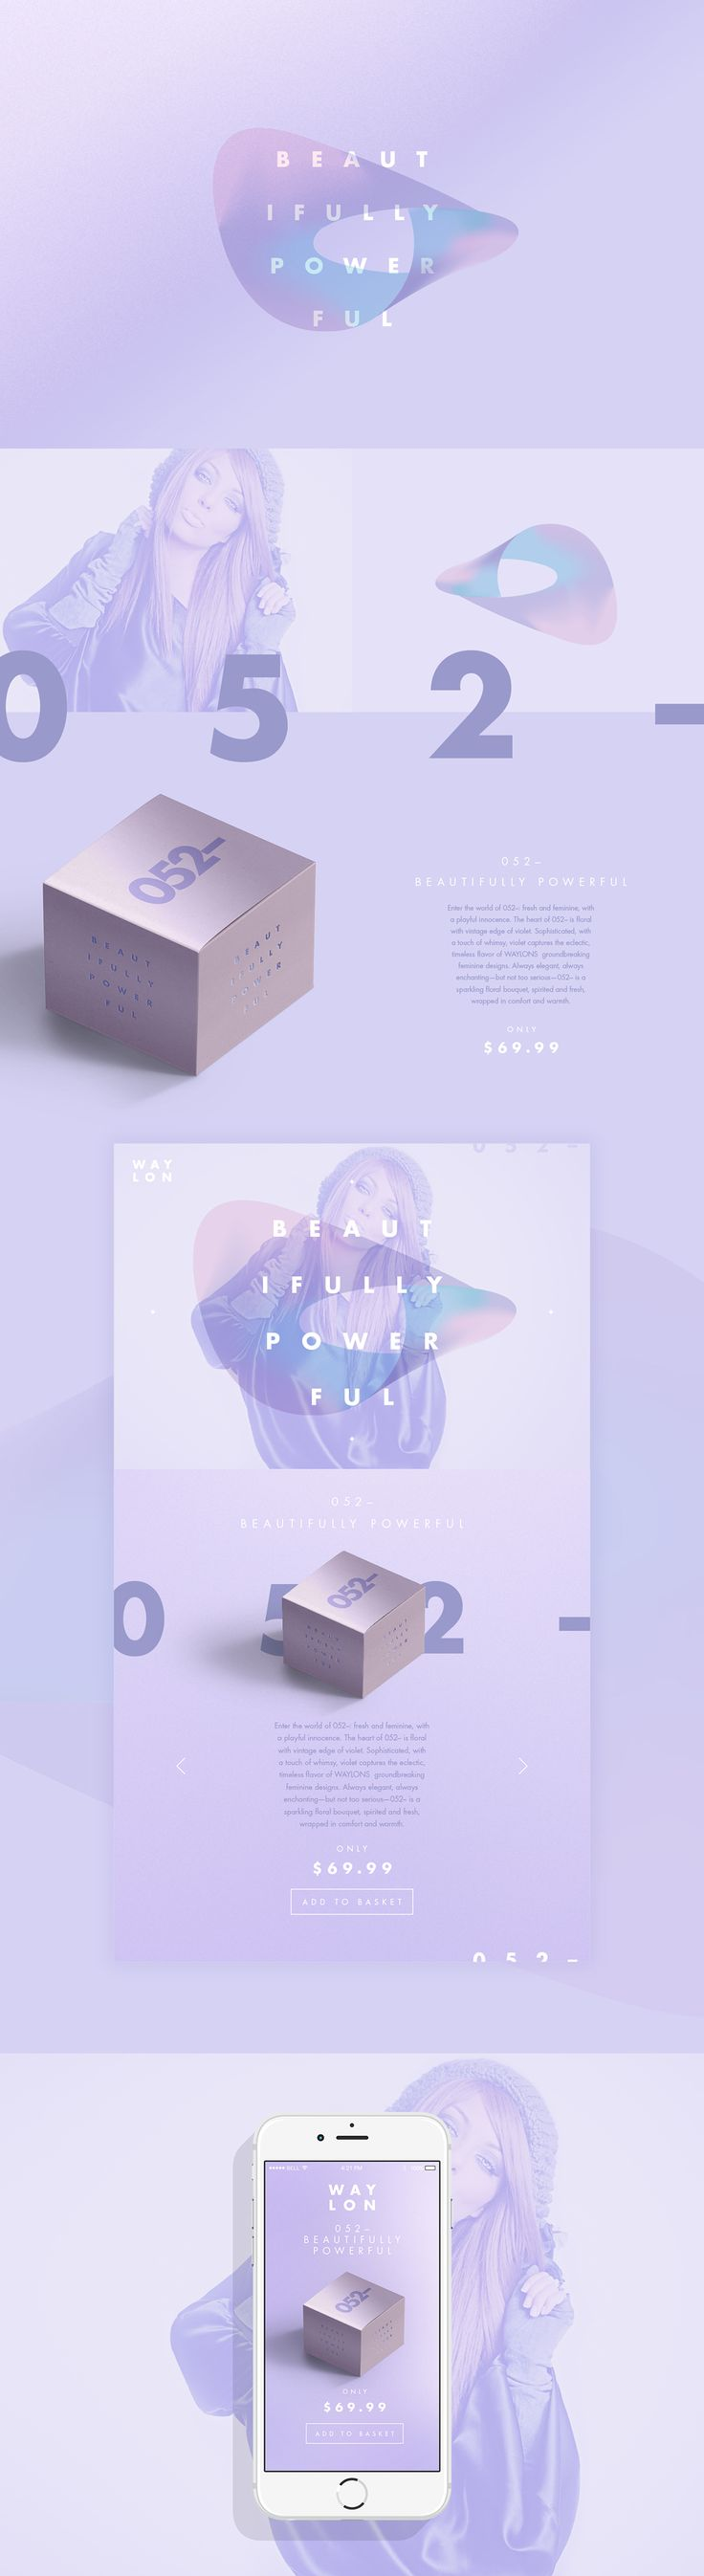 WAYLON // Beautiful In Every Way on Web Design Served